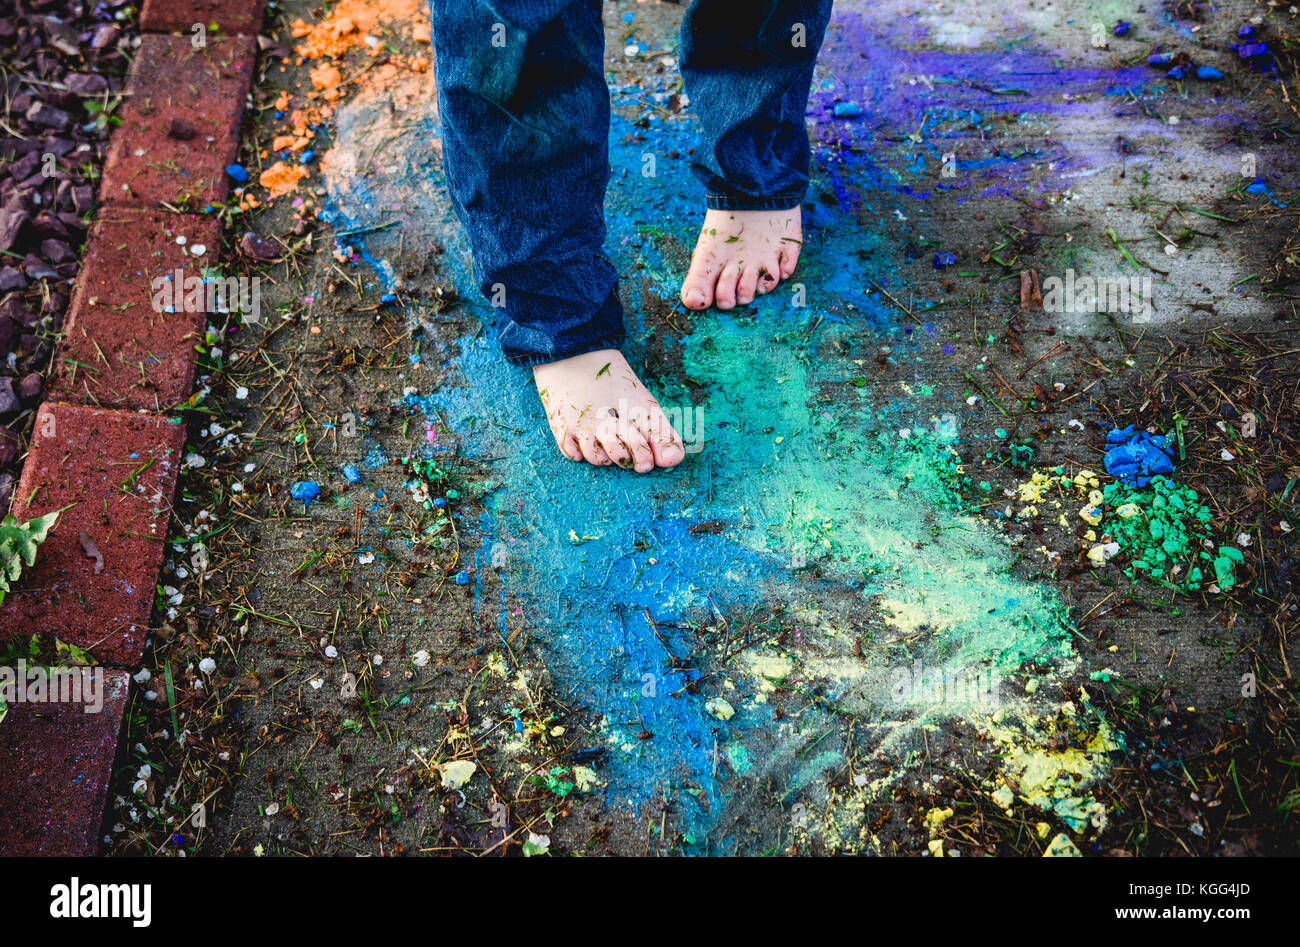 A child stands barefoot on a sidewalk with colors around the feet - Stock Image